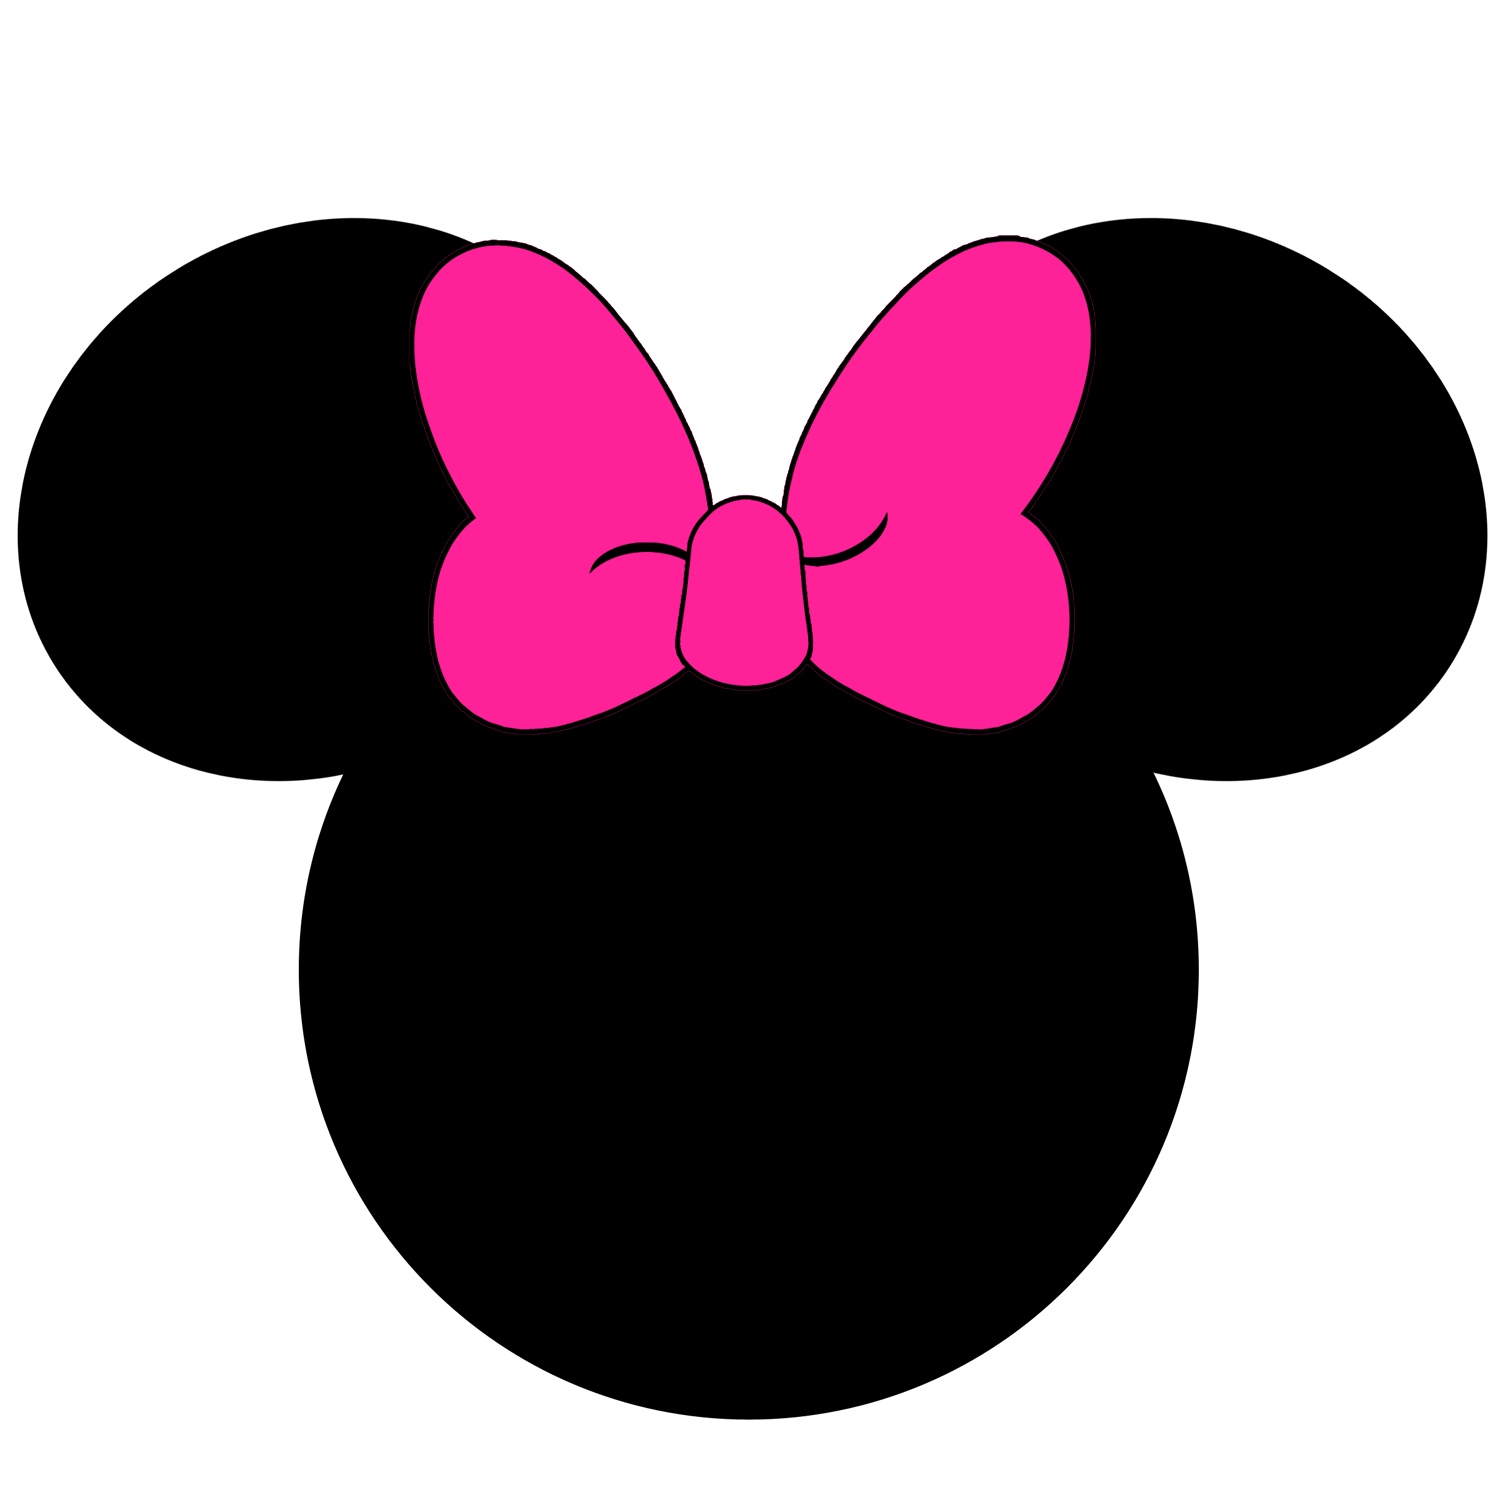 Ears clipart silhouette. Mickey at getdrawings com